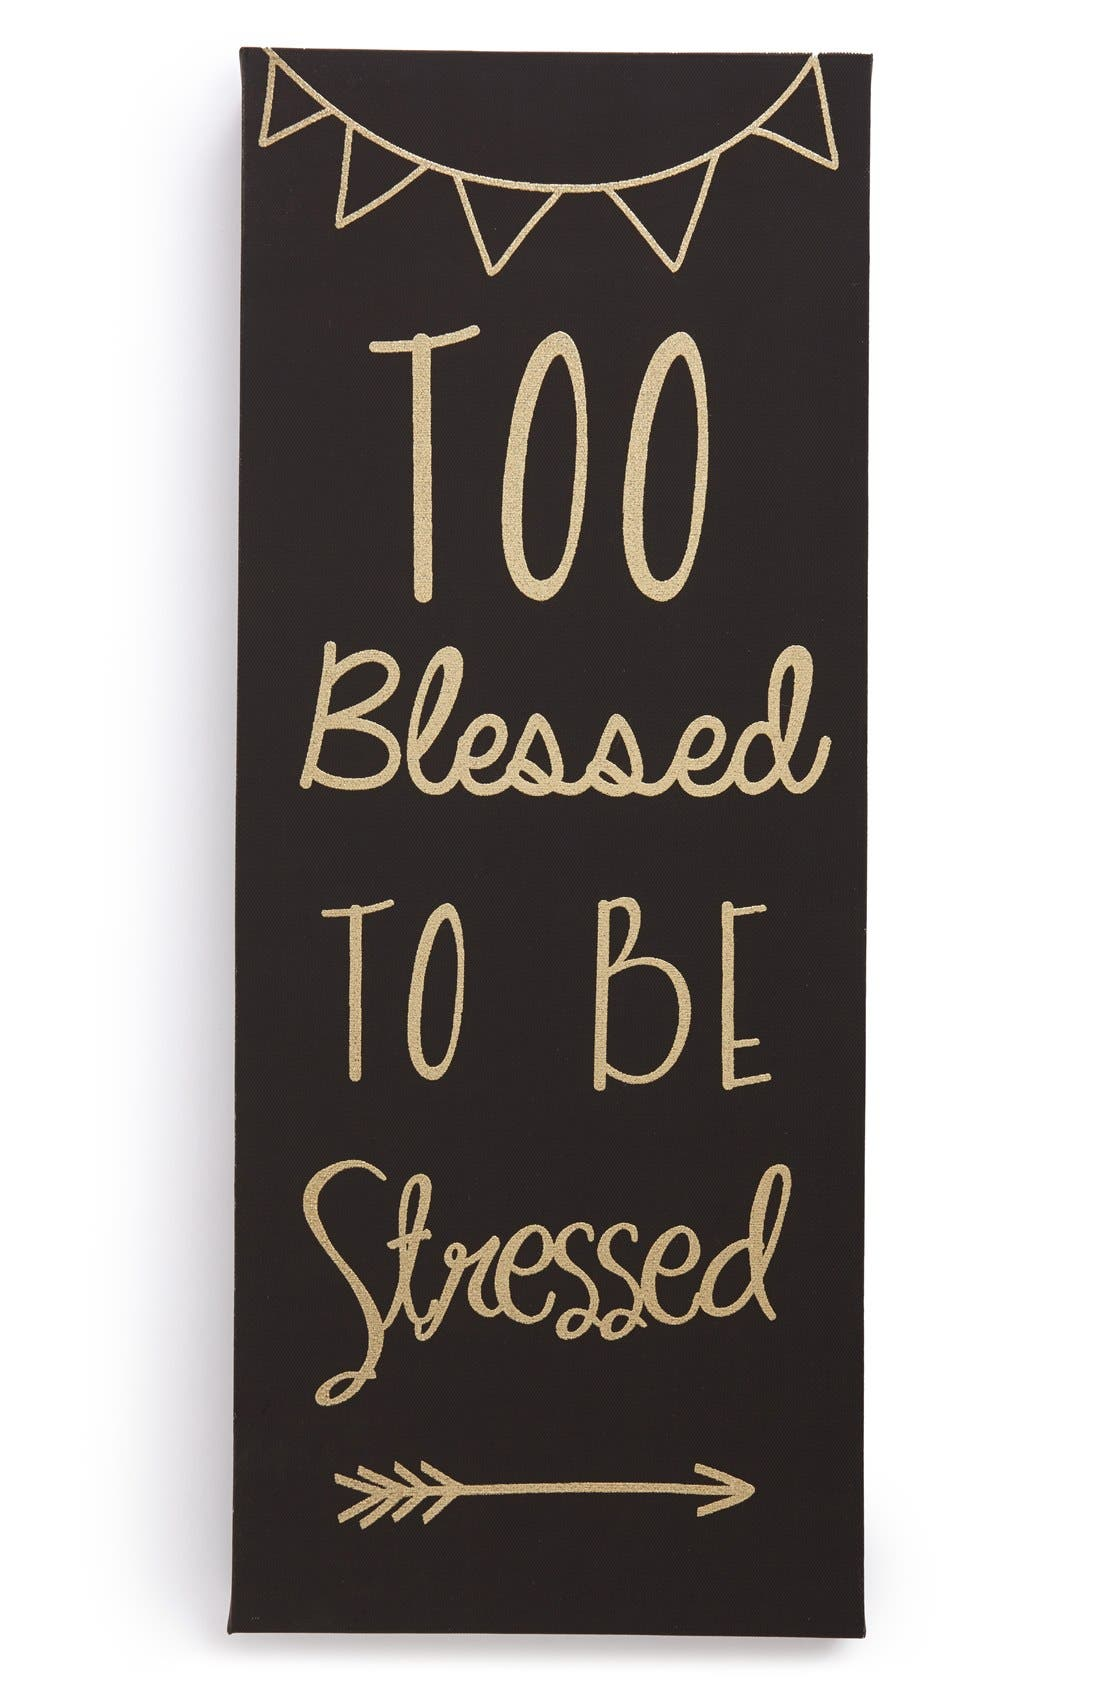 Main Image - Crystal Art Gallery 'Too Blessed' Wrapped Canvas Wall Art